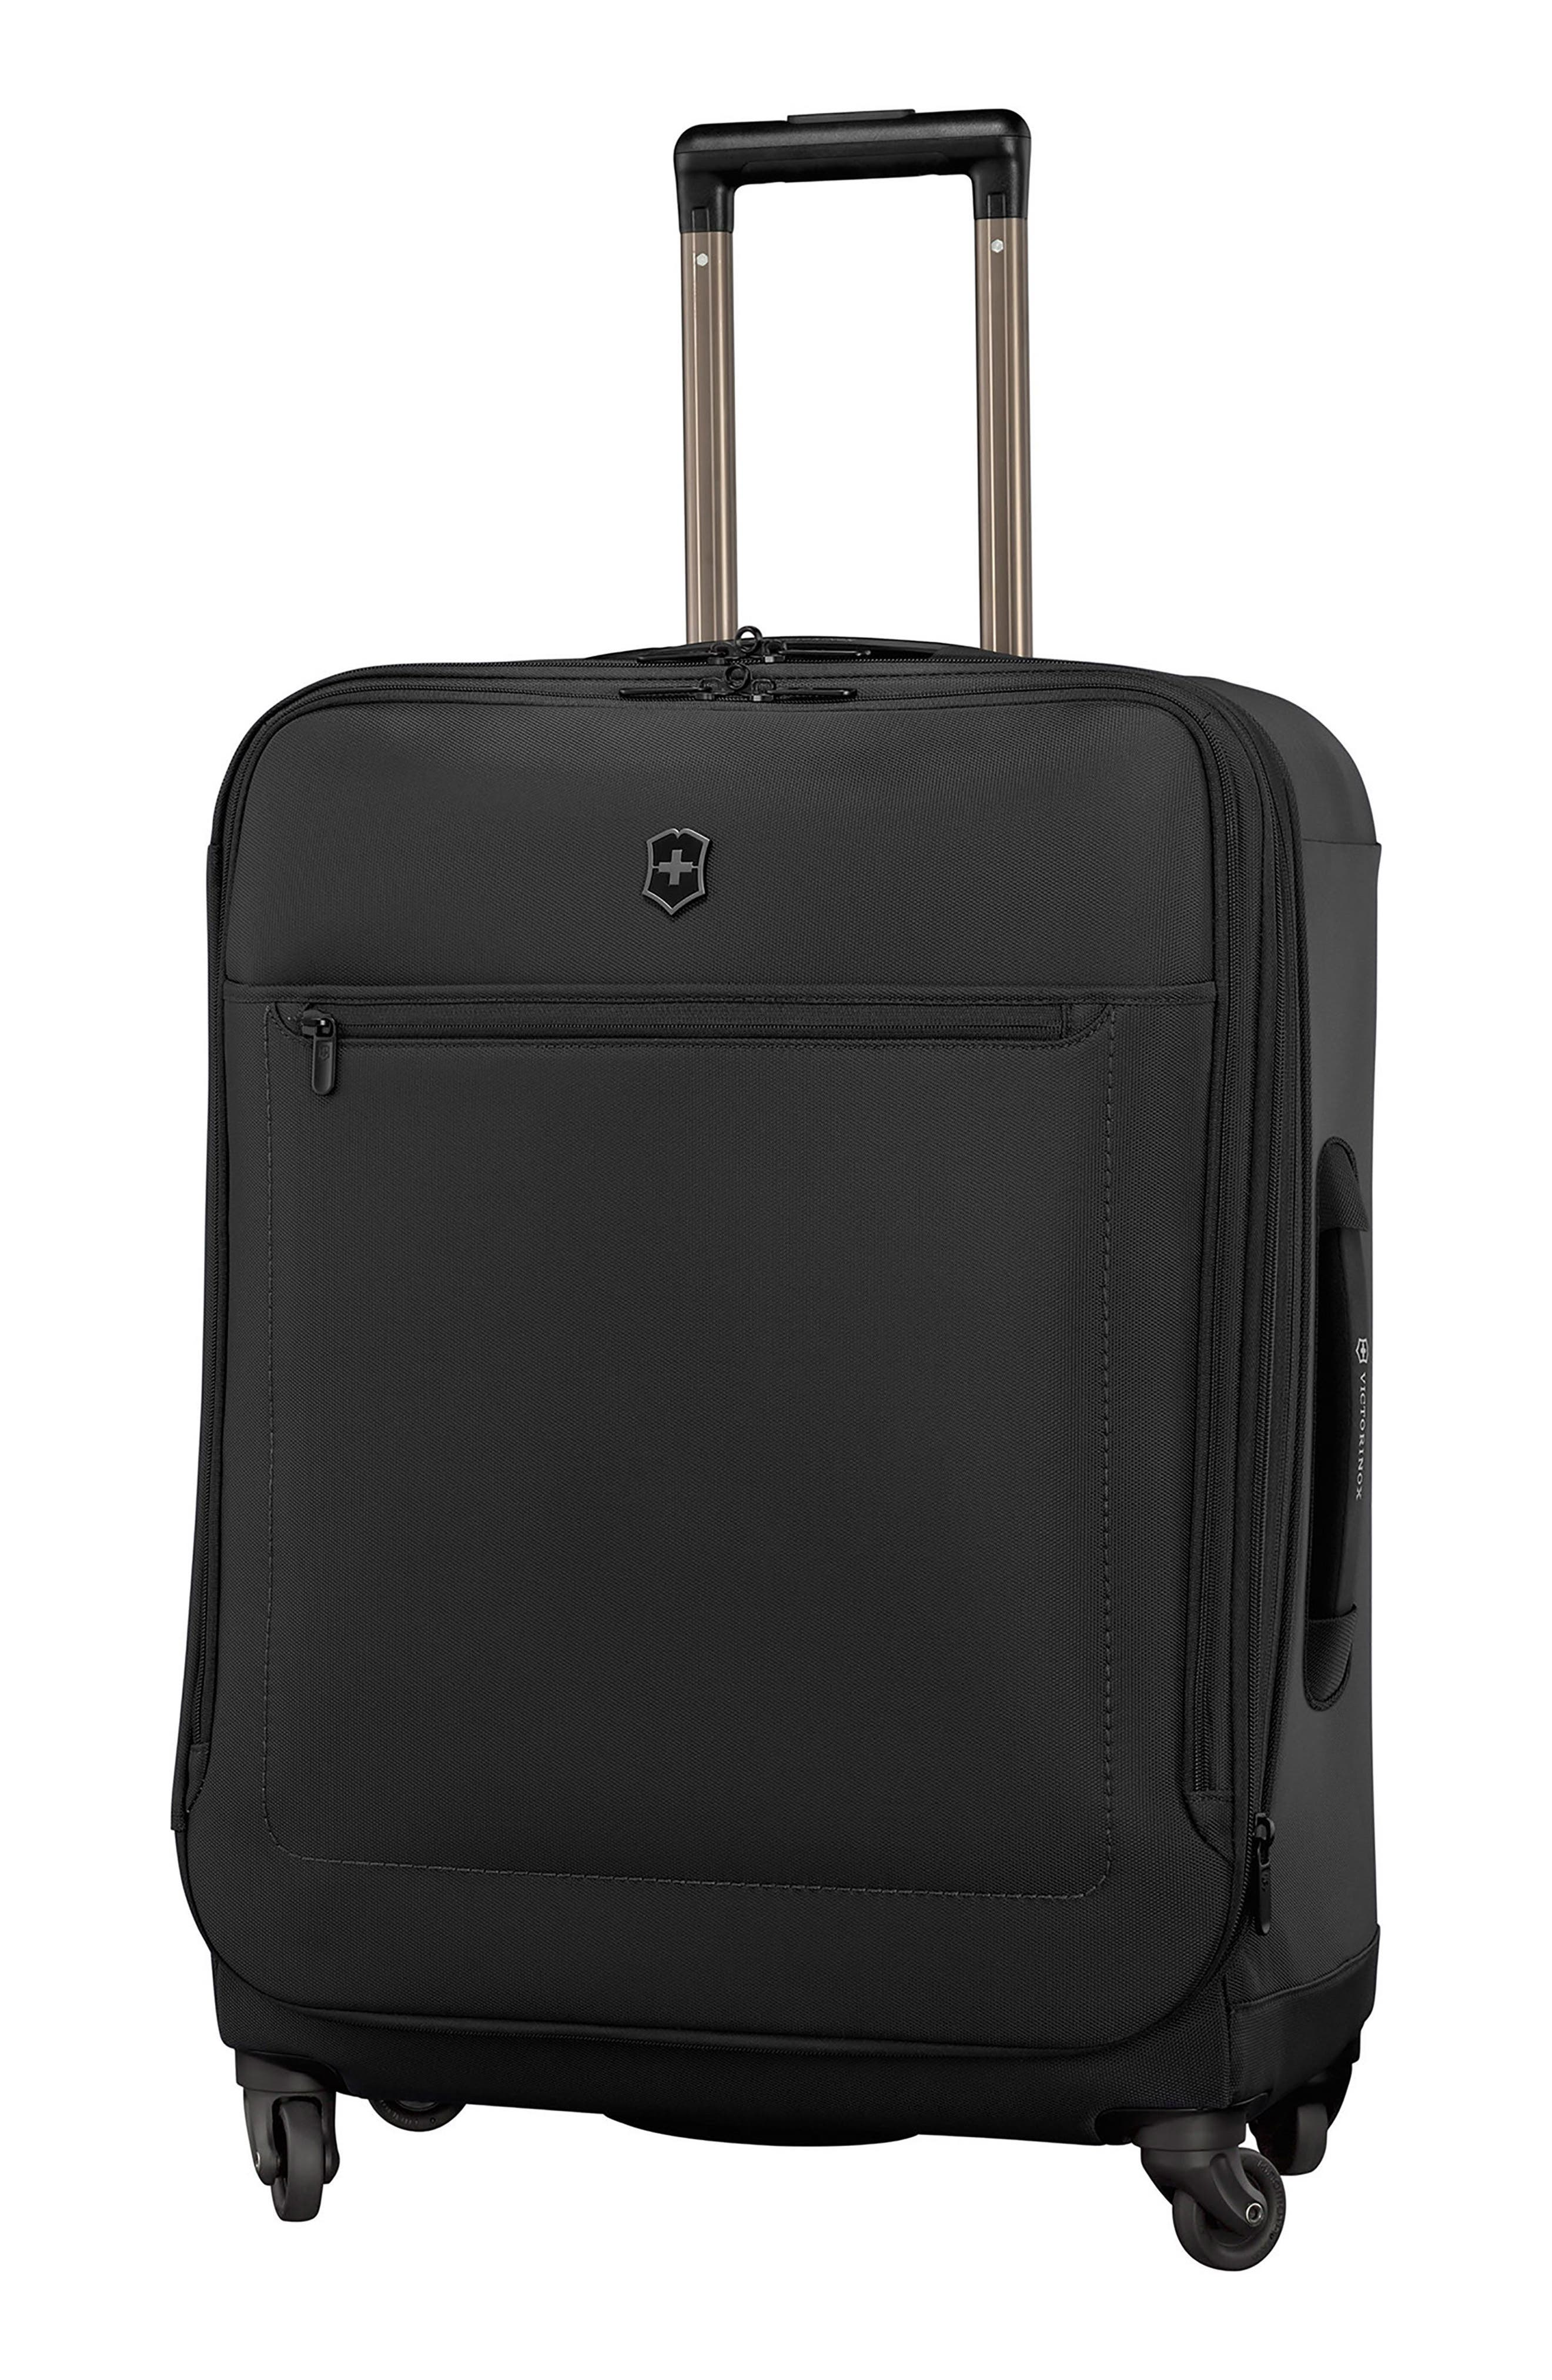 Victorinox Swiss Army® Avolve 3.0 26-Inch Wheeled Packing Case